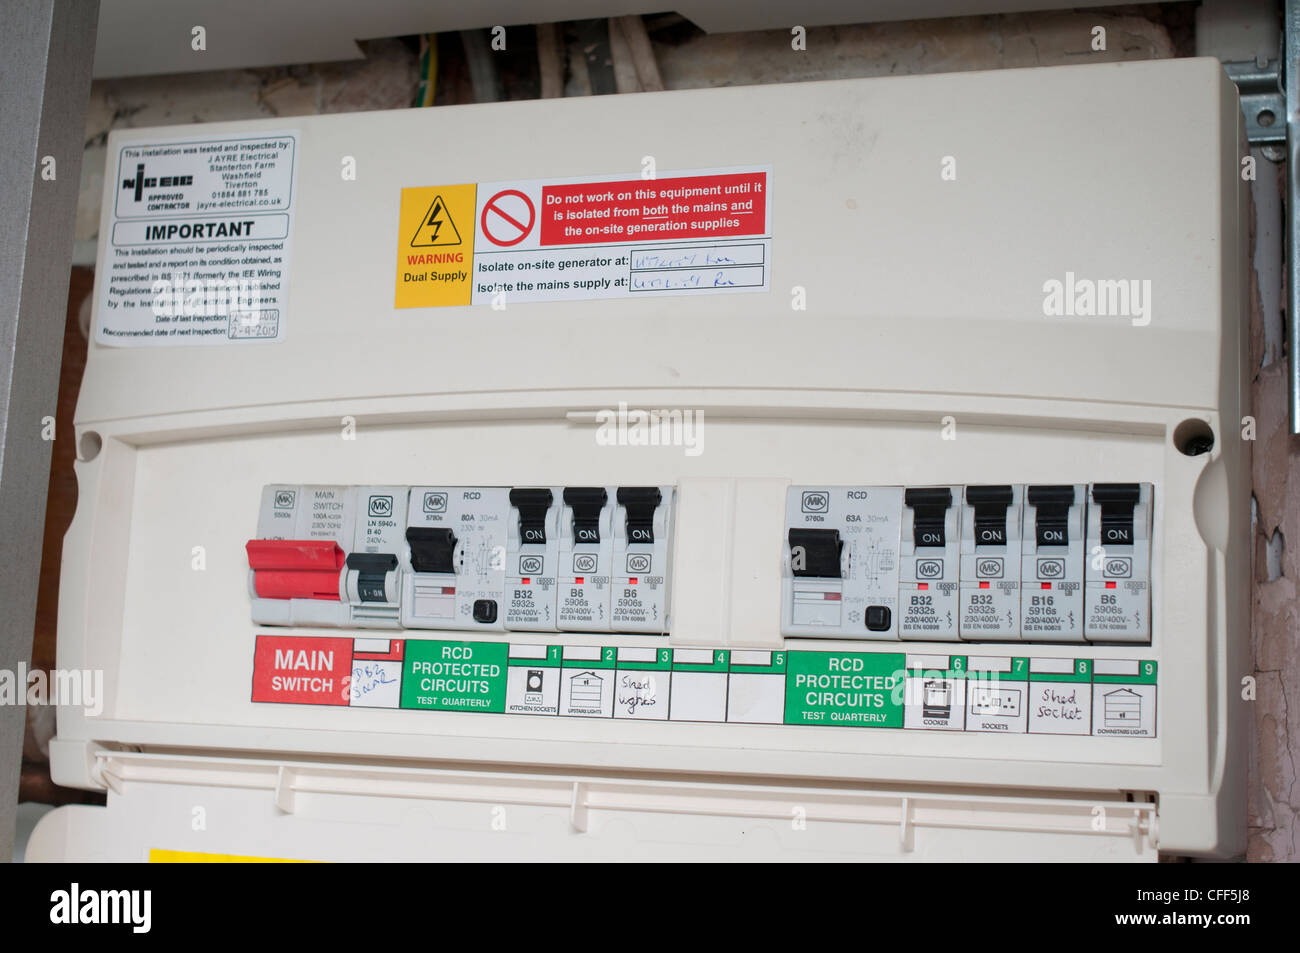 hight resolution of domestic fuse box stock photos domestic fuse box stock images alamy home fuse box tester